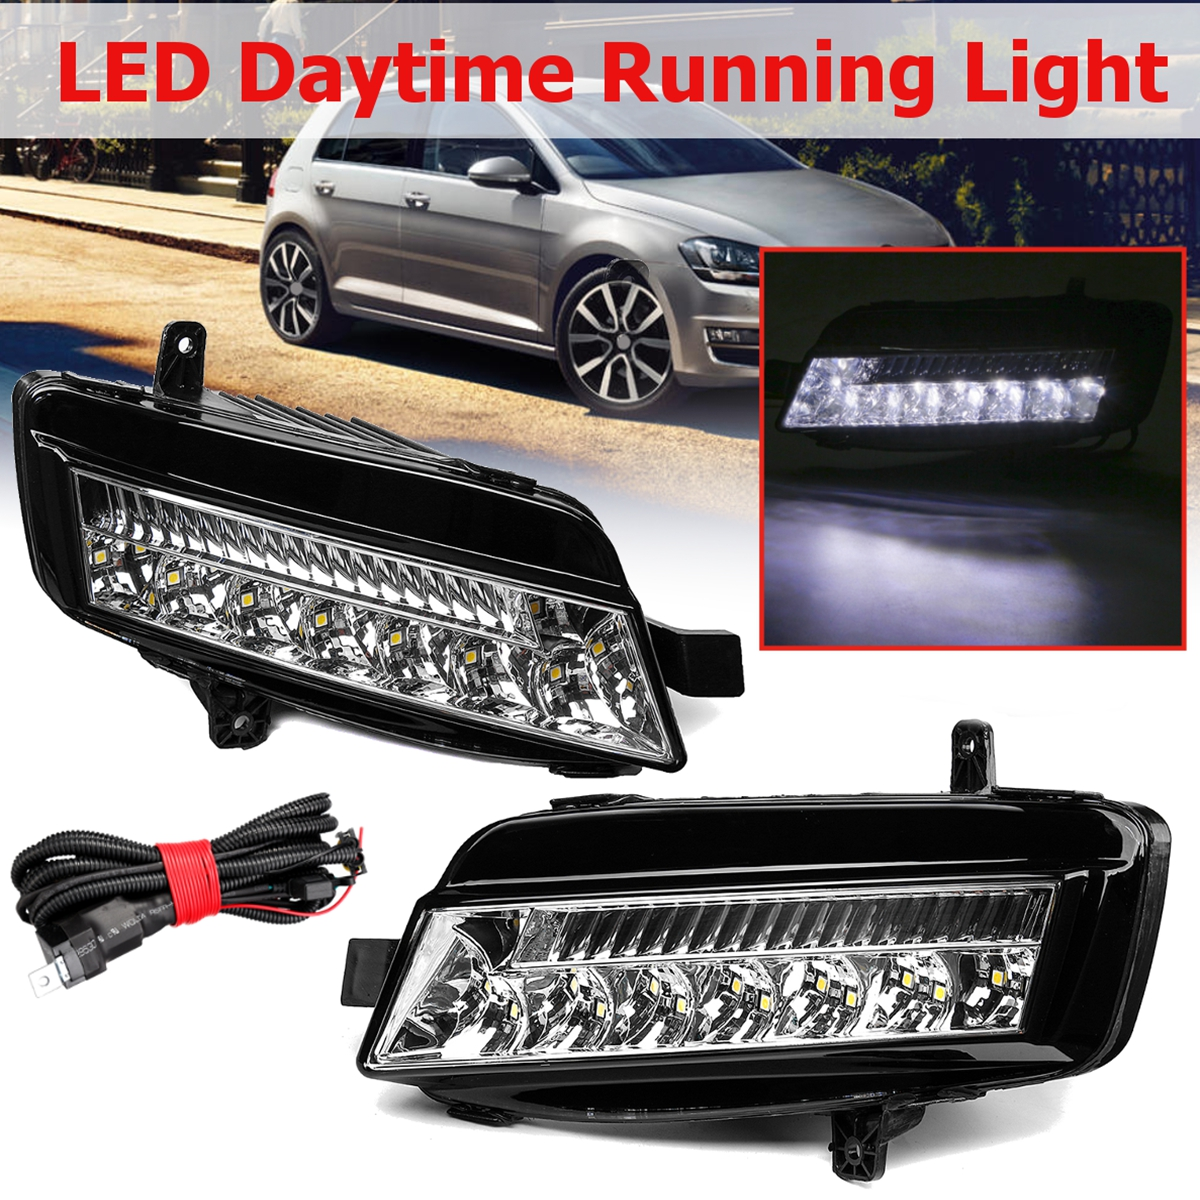 For VW Golf 7 MK7 2014 2015 2016 2017 1 Pair LED DRL Daytime Running Lights Fog Light Fog Lamp Car-styling Headlights Head Lamp mayer